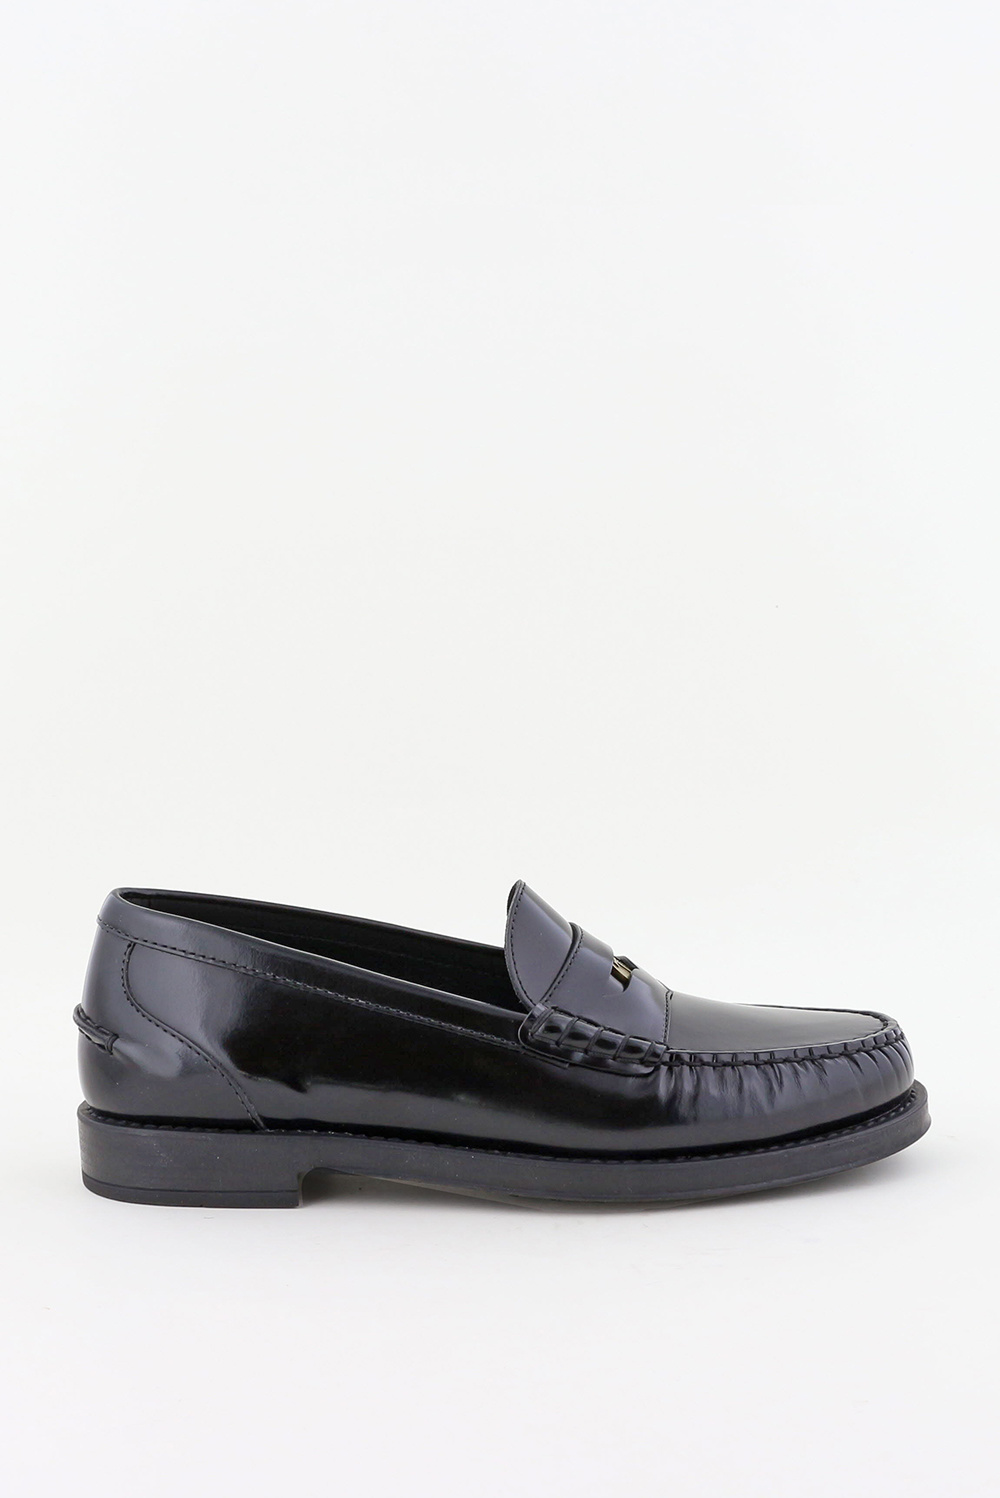 Tods loafers XXW02I0EP00S zwart